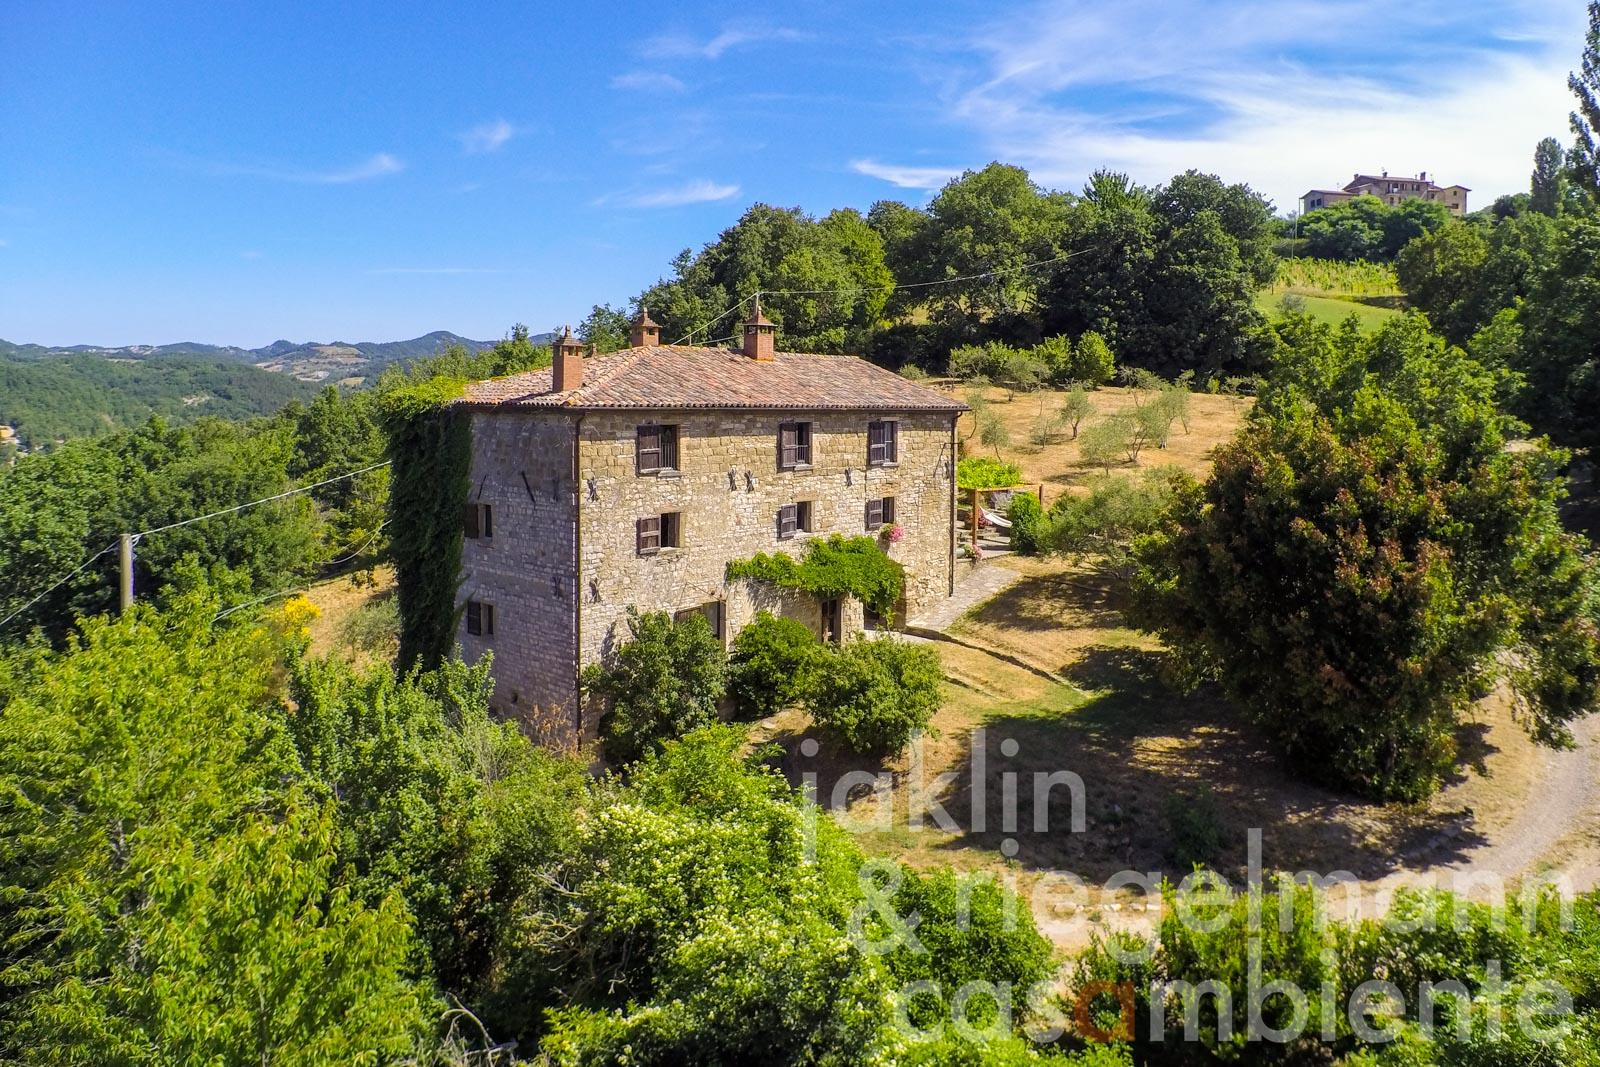 Traditionally restored Umbrian farmhouse near the village of Pietralunga